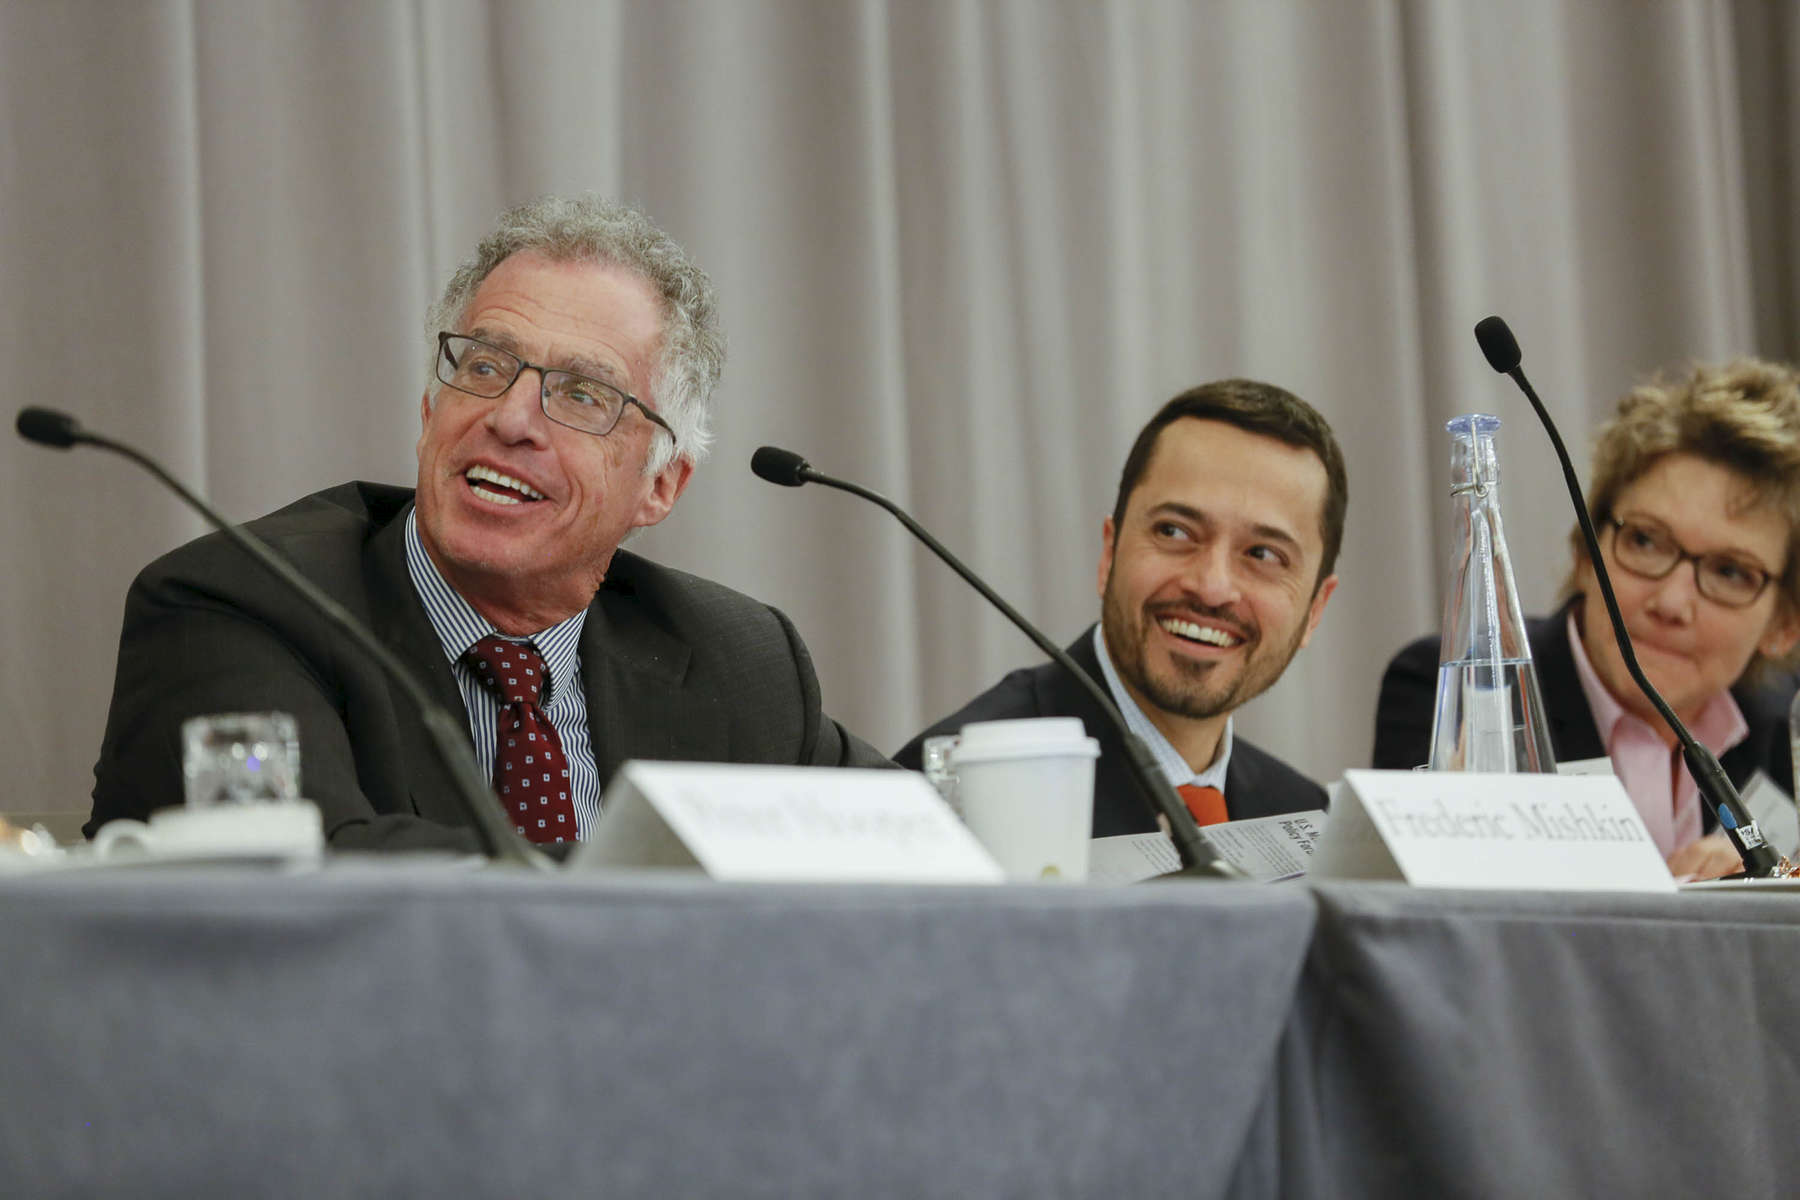 Left to Right: Frederic S. Mishkin, Columbia business School (co-chair), Amir Sufi, UChicago Booth Business School, and Mary Daly, Federal Reserve Bank of San Francisco.